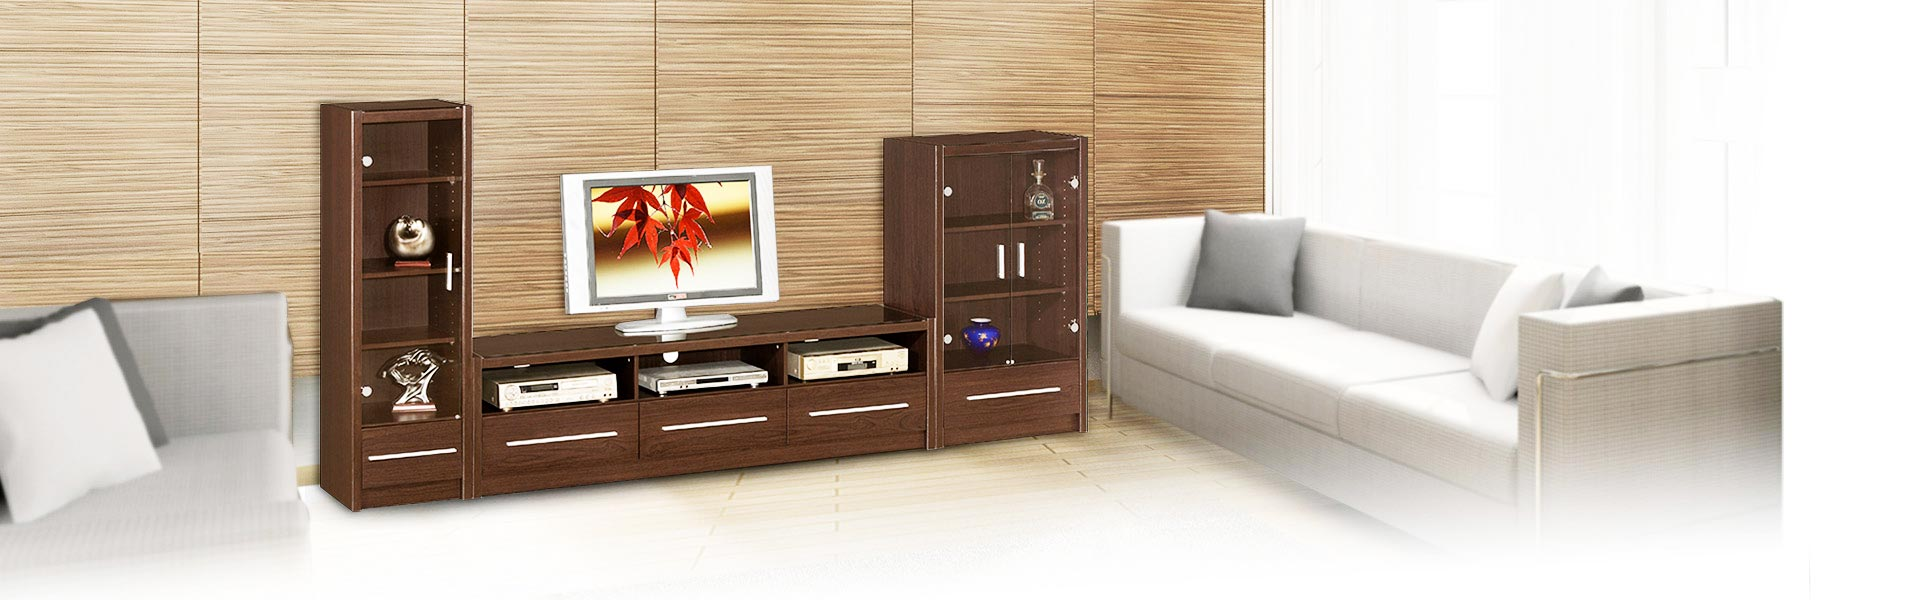 comment choisir son meuble tv envie d co. Black Bedroom Furniture Sets. Home Design Ideas